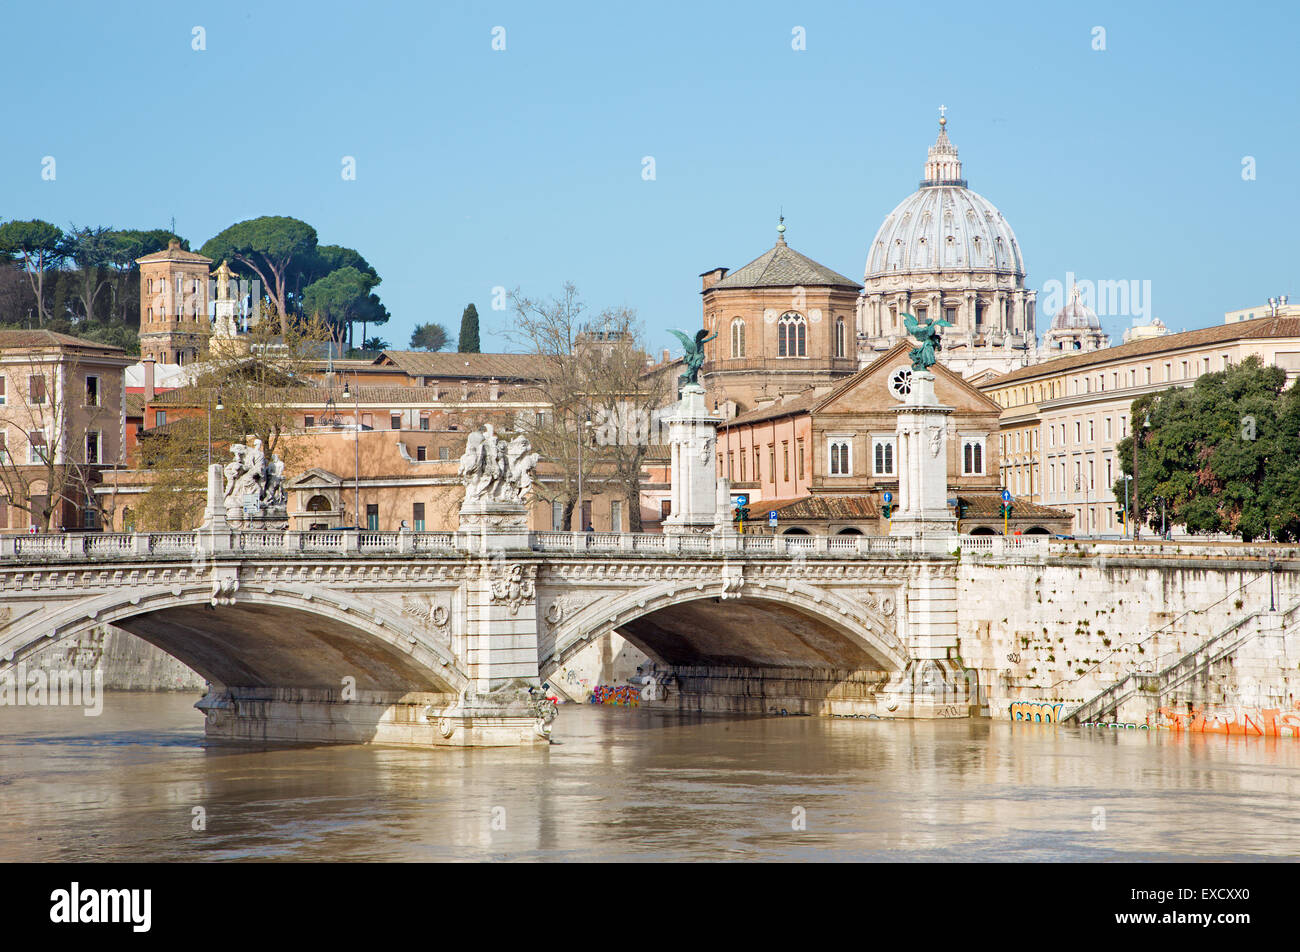 Rome - Vittorio Emanuele II and cupola of St. Peters basilica in the background. - Stock Image